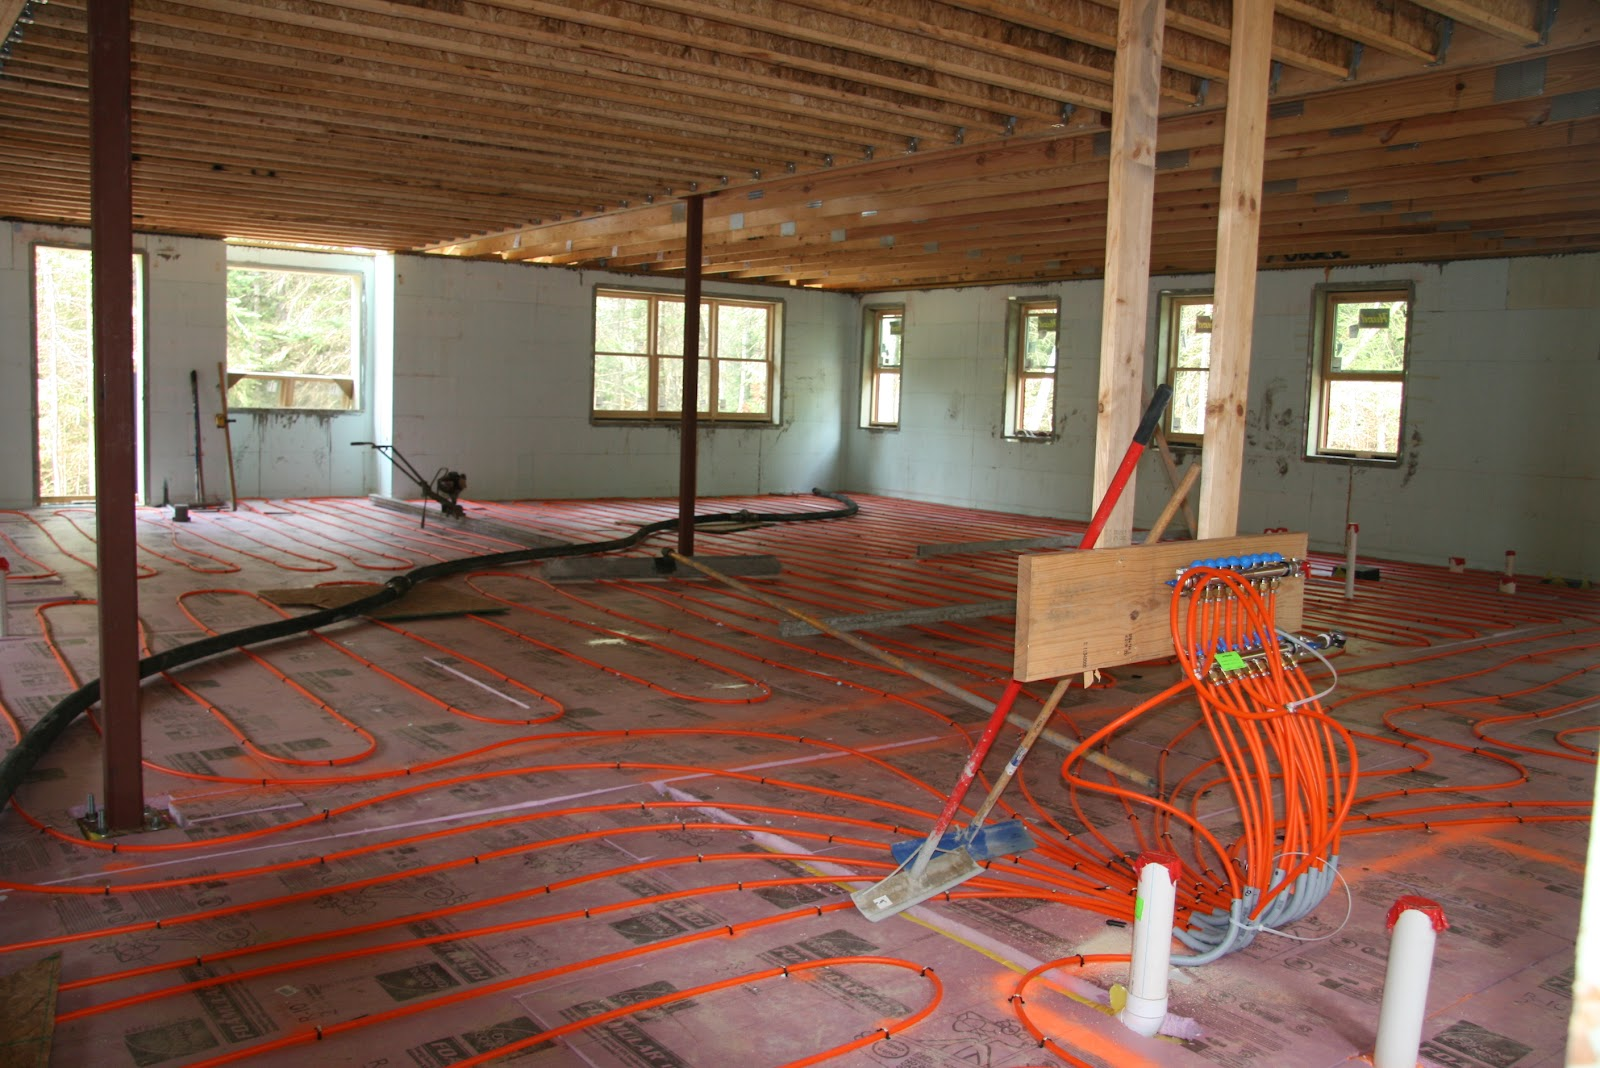 River S Edge Project Radiant Floor Heating With An Open